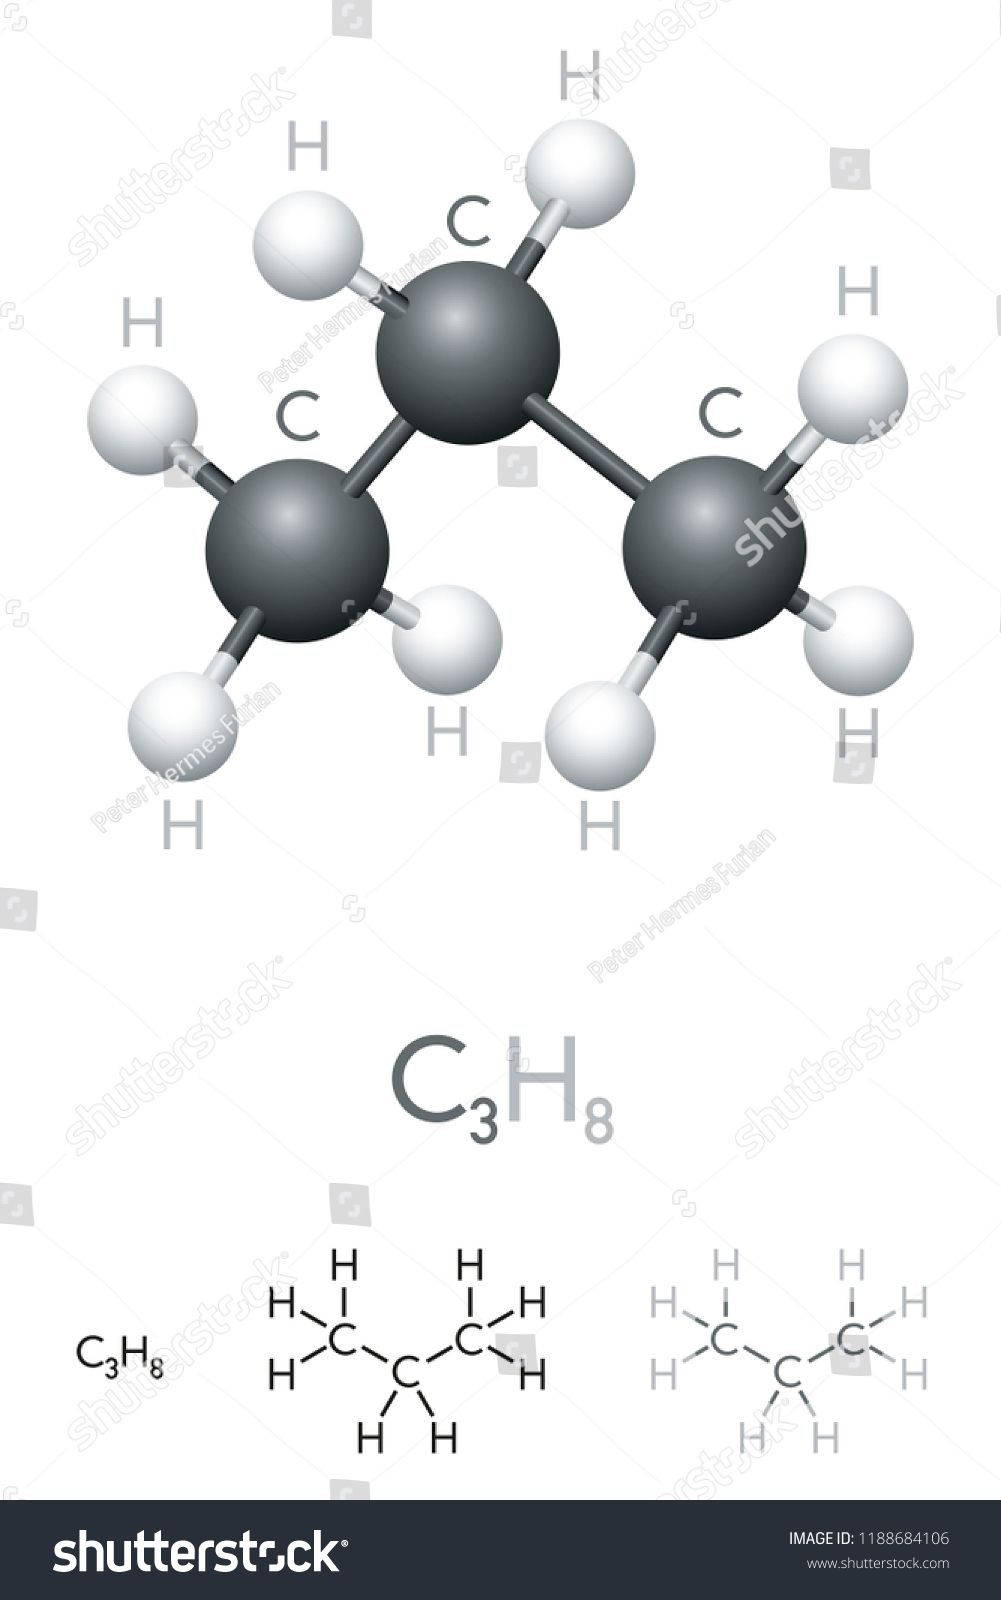 medium resolution of propane c3h8 molecule model and chemical formula organic chemical compound used as